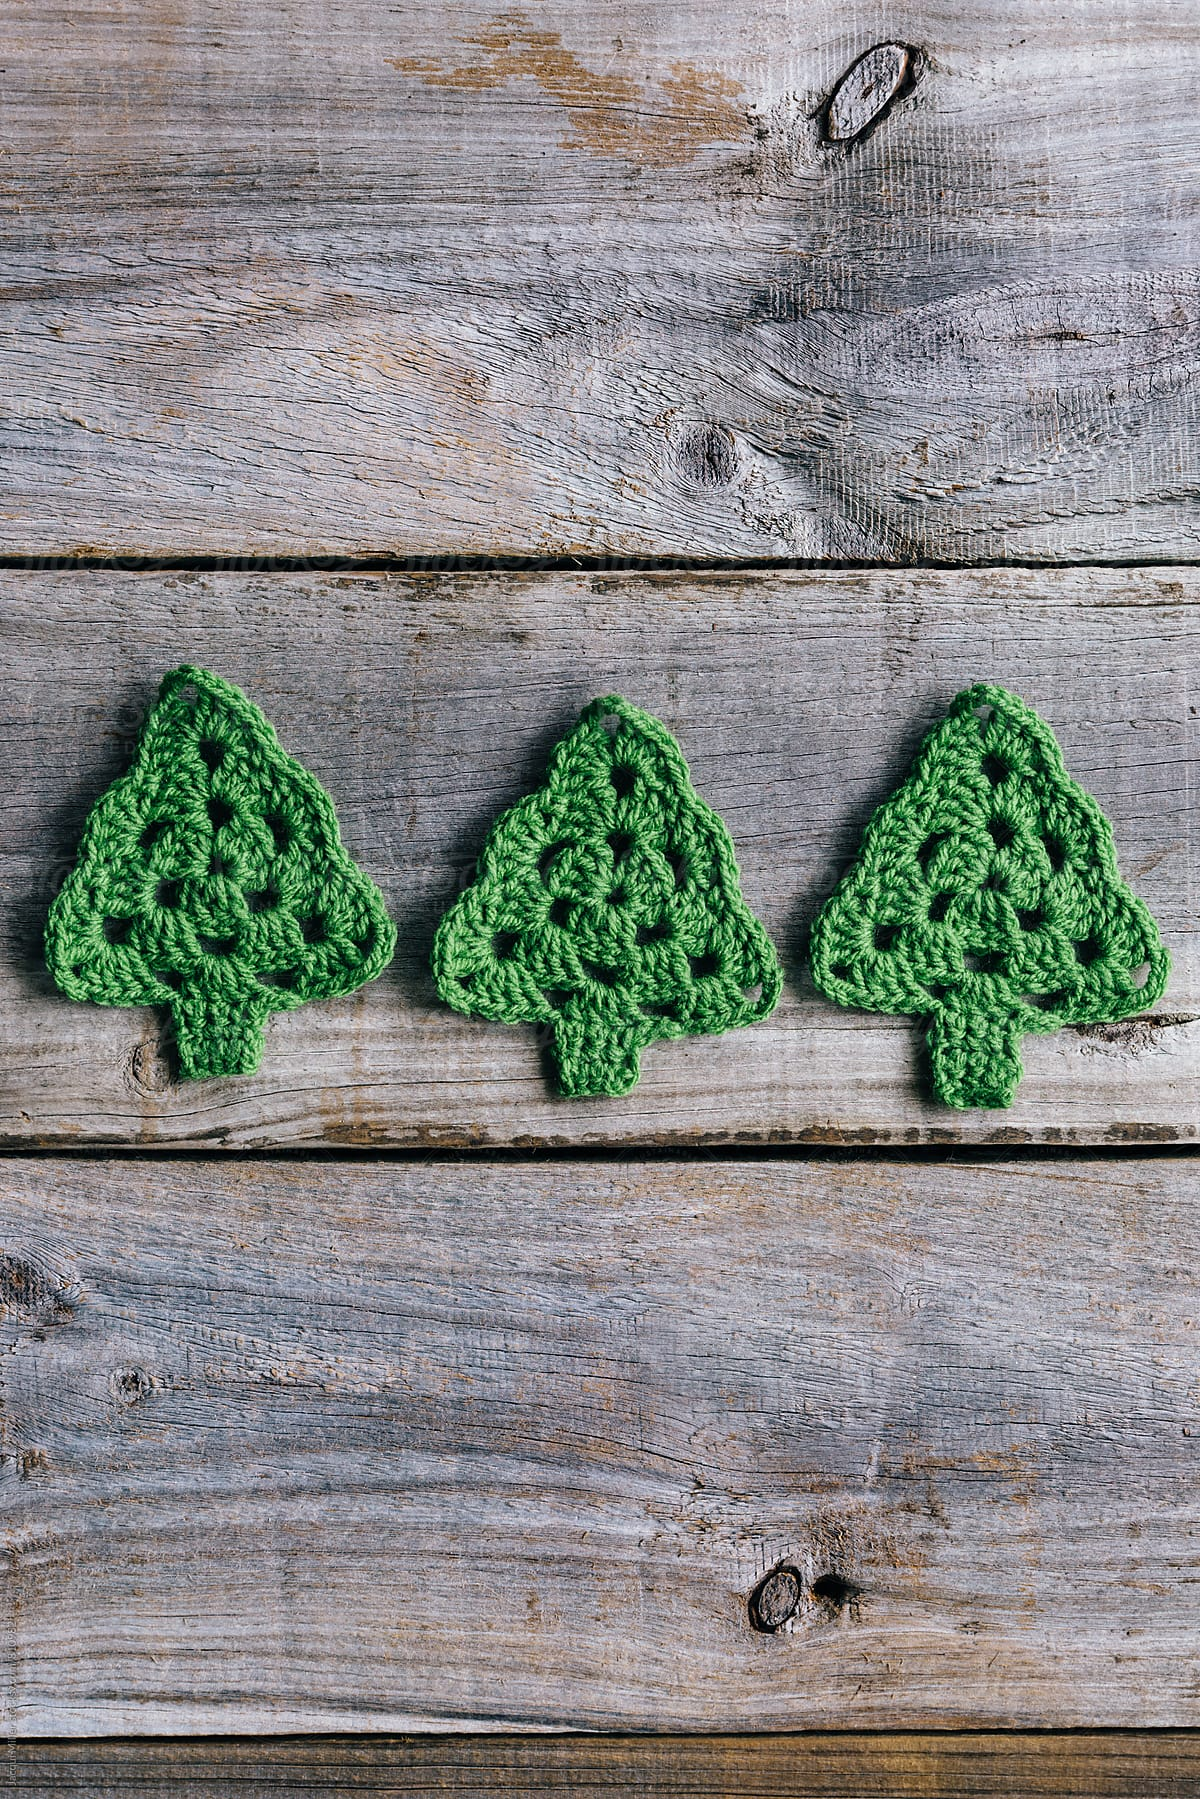 Three Little Crocheted Christmas Trees On Rustic Wood Background Vertical By Jacqui Miller Christmas Decoration Stocksy United